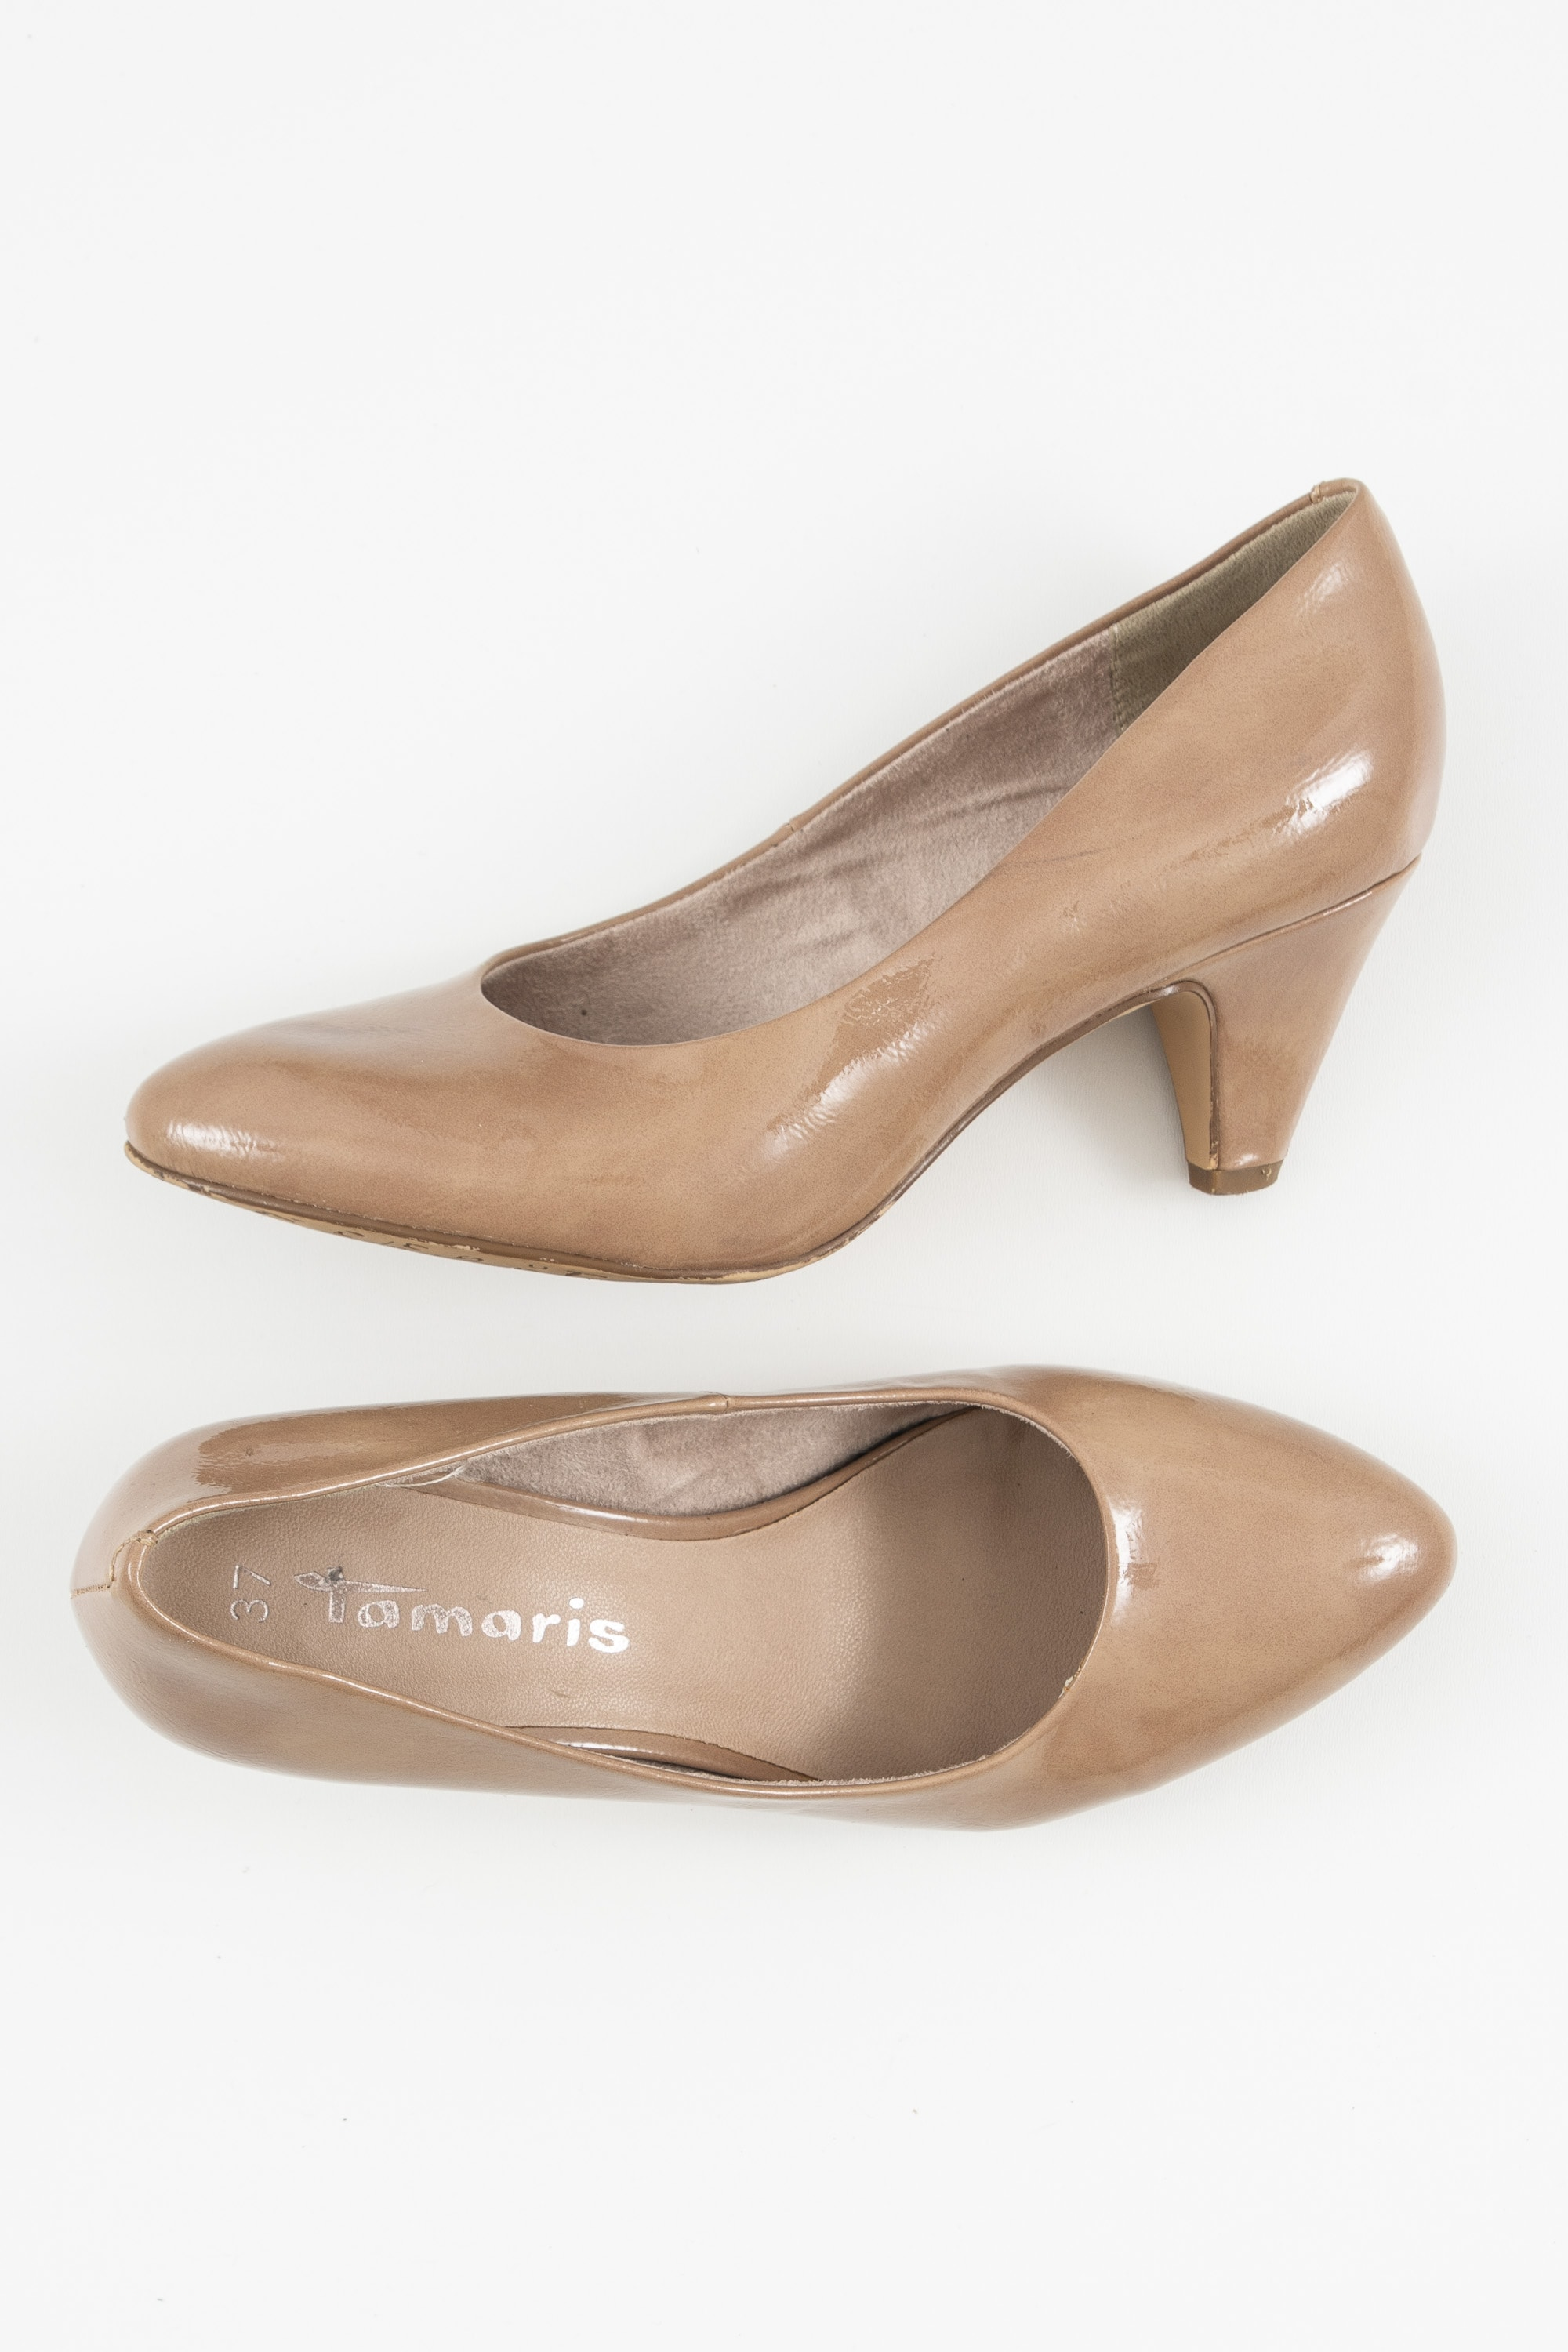 Tamaris Pumps Beige Gr.37